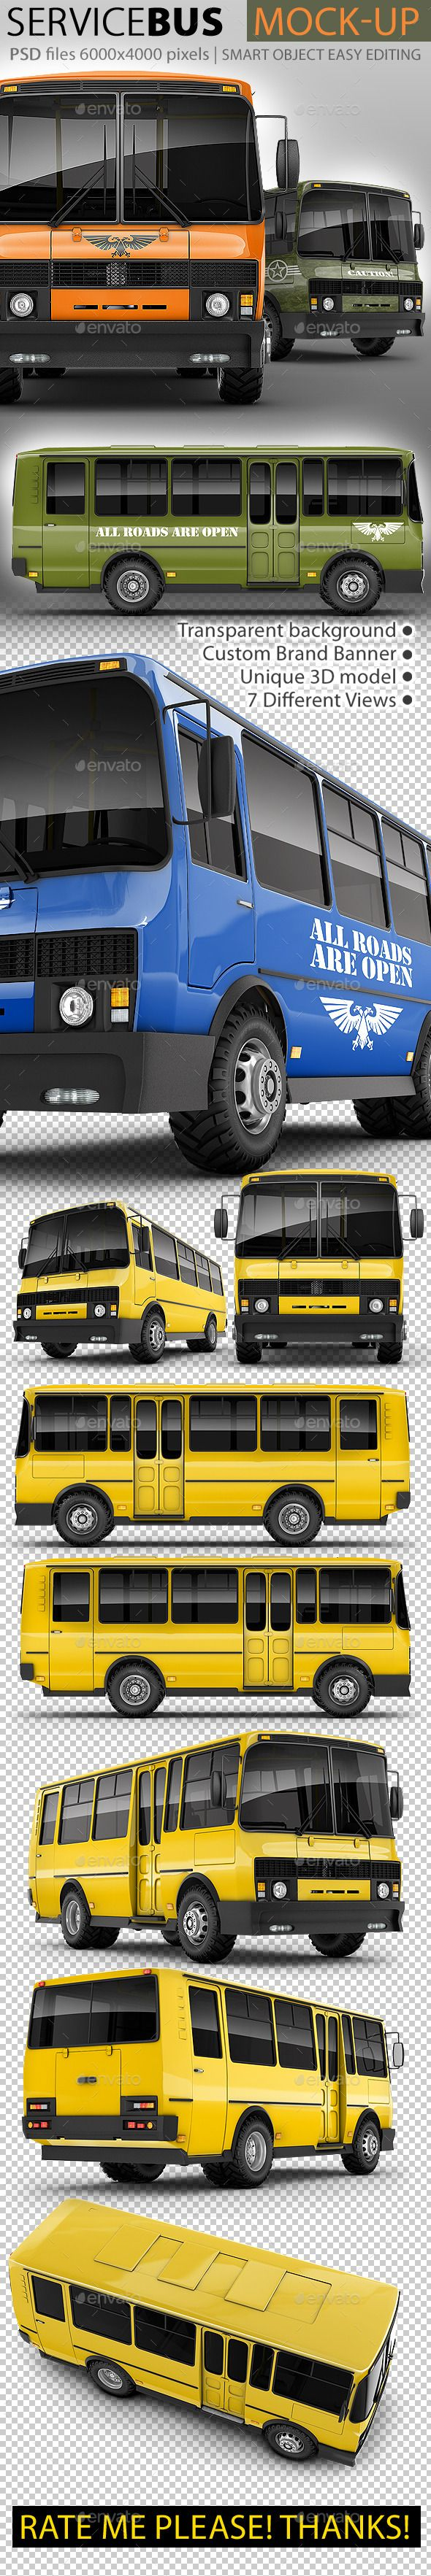 Service Bus Mock-up by Bennet1890 Set includes 7 hi-res 3D renders of service bus, based on real russian bus model PAZ 3205, in different PSD files 60004000 resolut